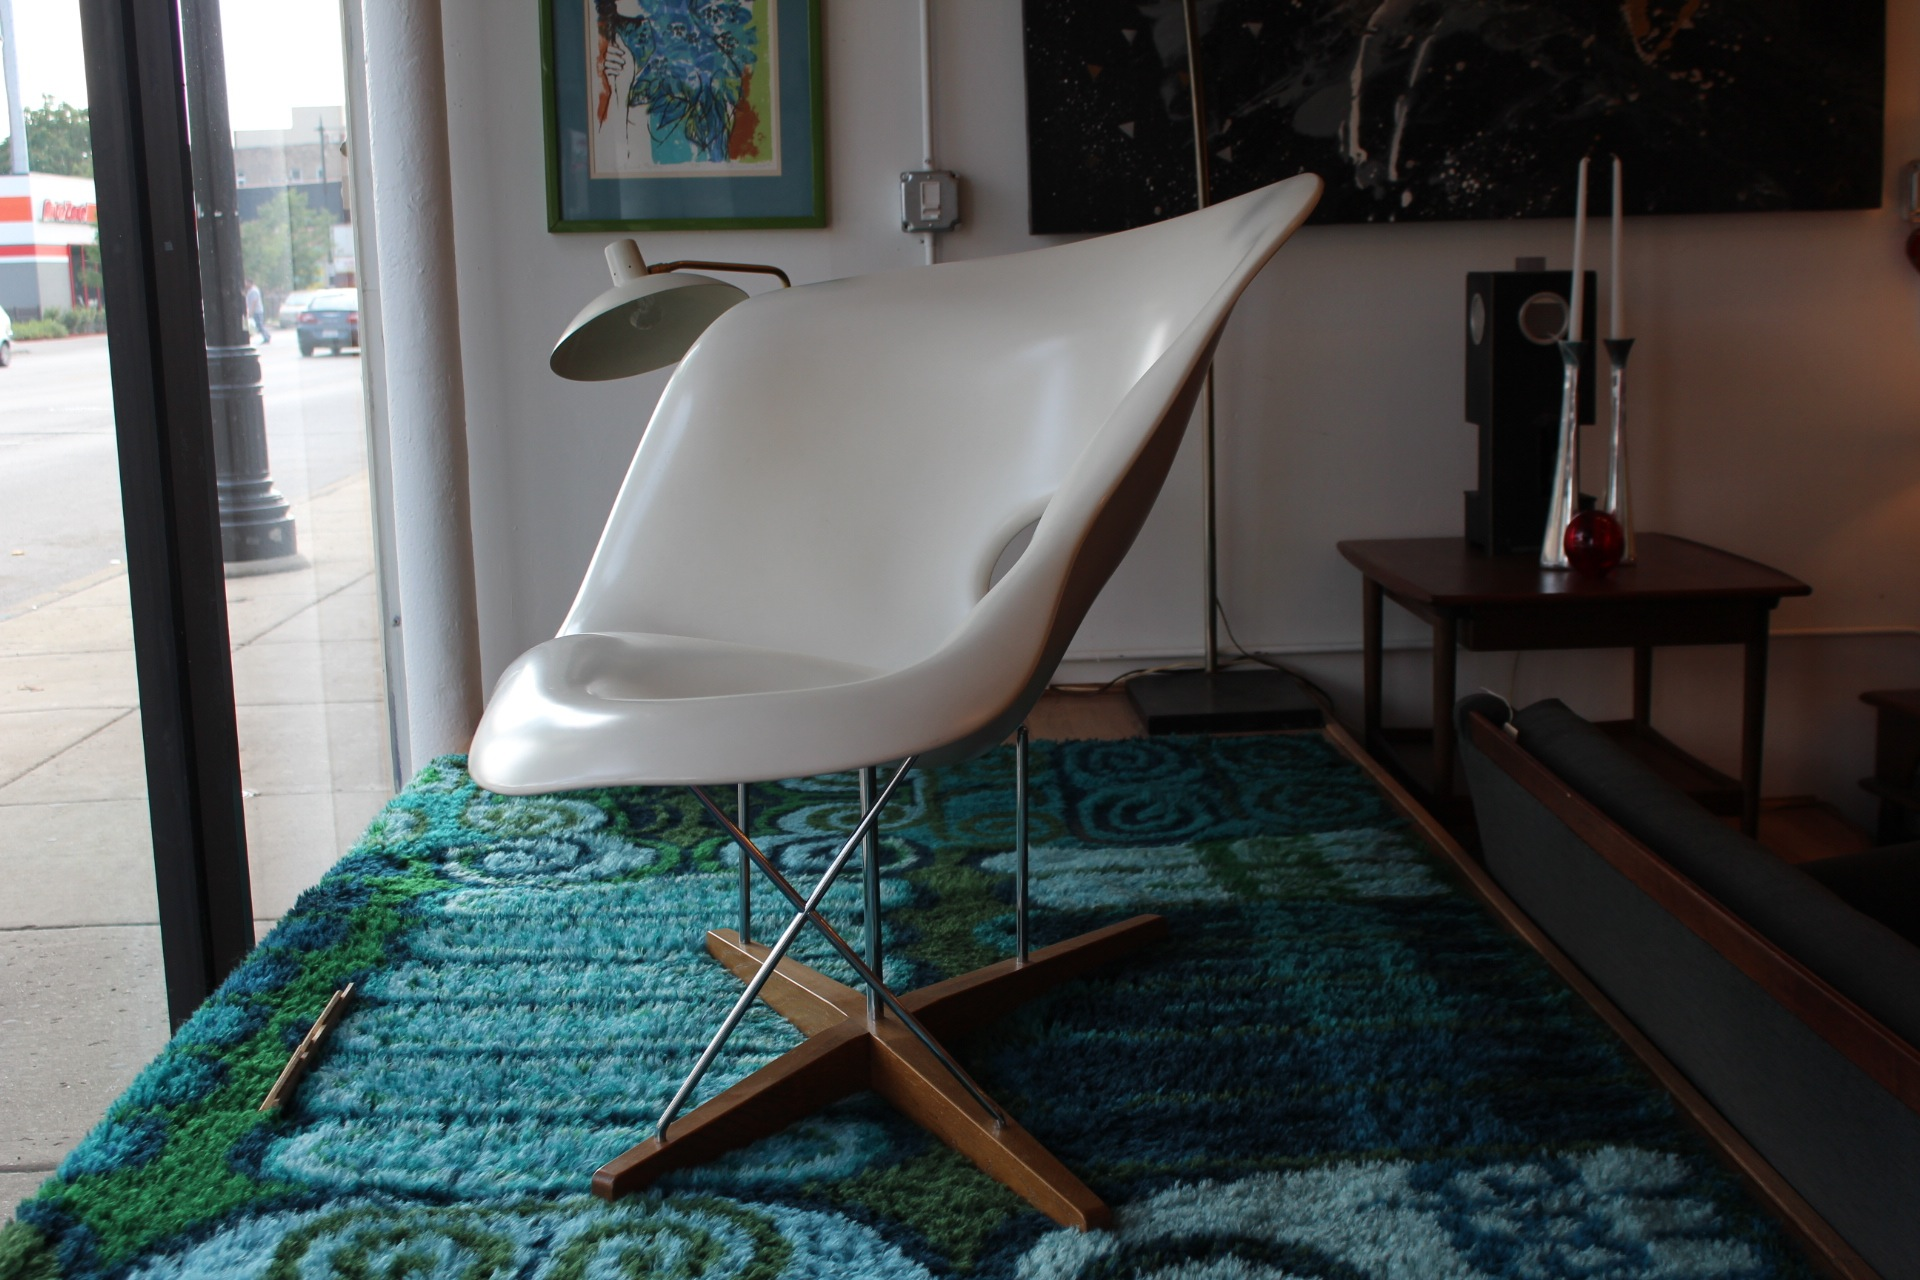 La Chaise Lounge Chair La Chaise Lounge Chair By Charles And Ray Eames